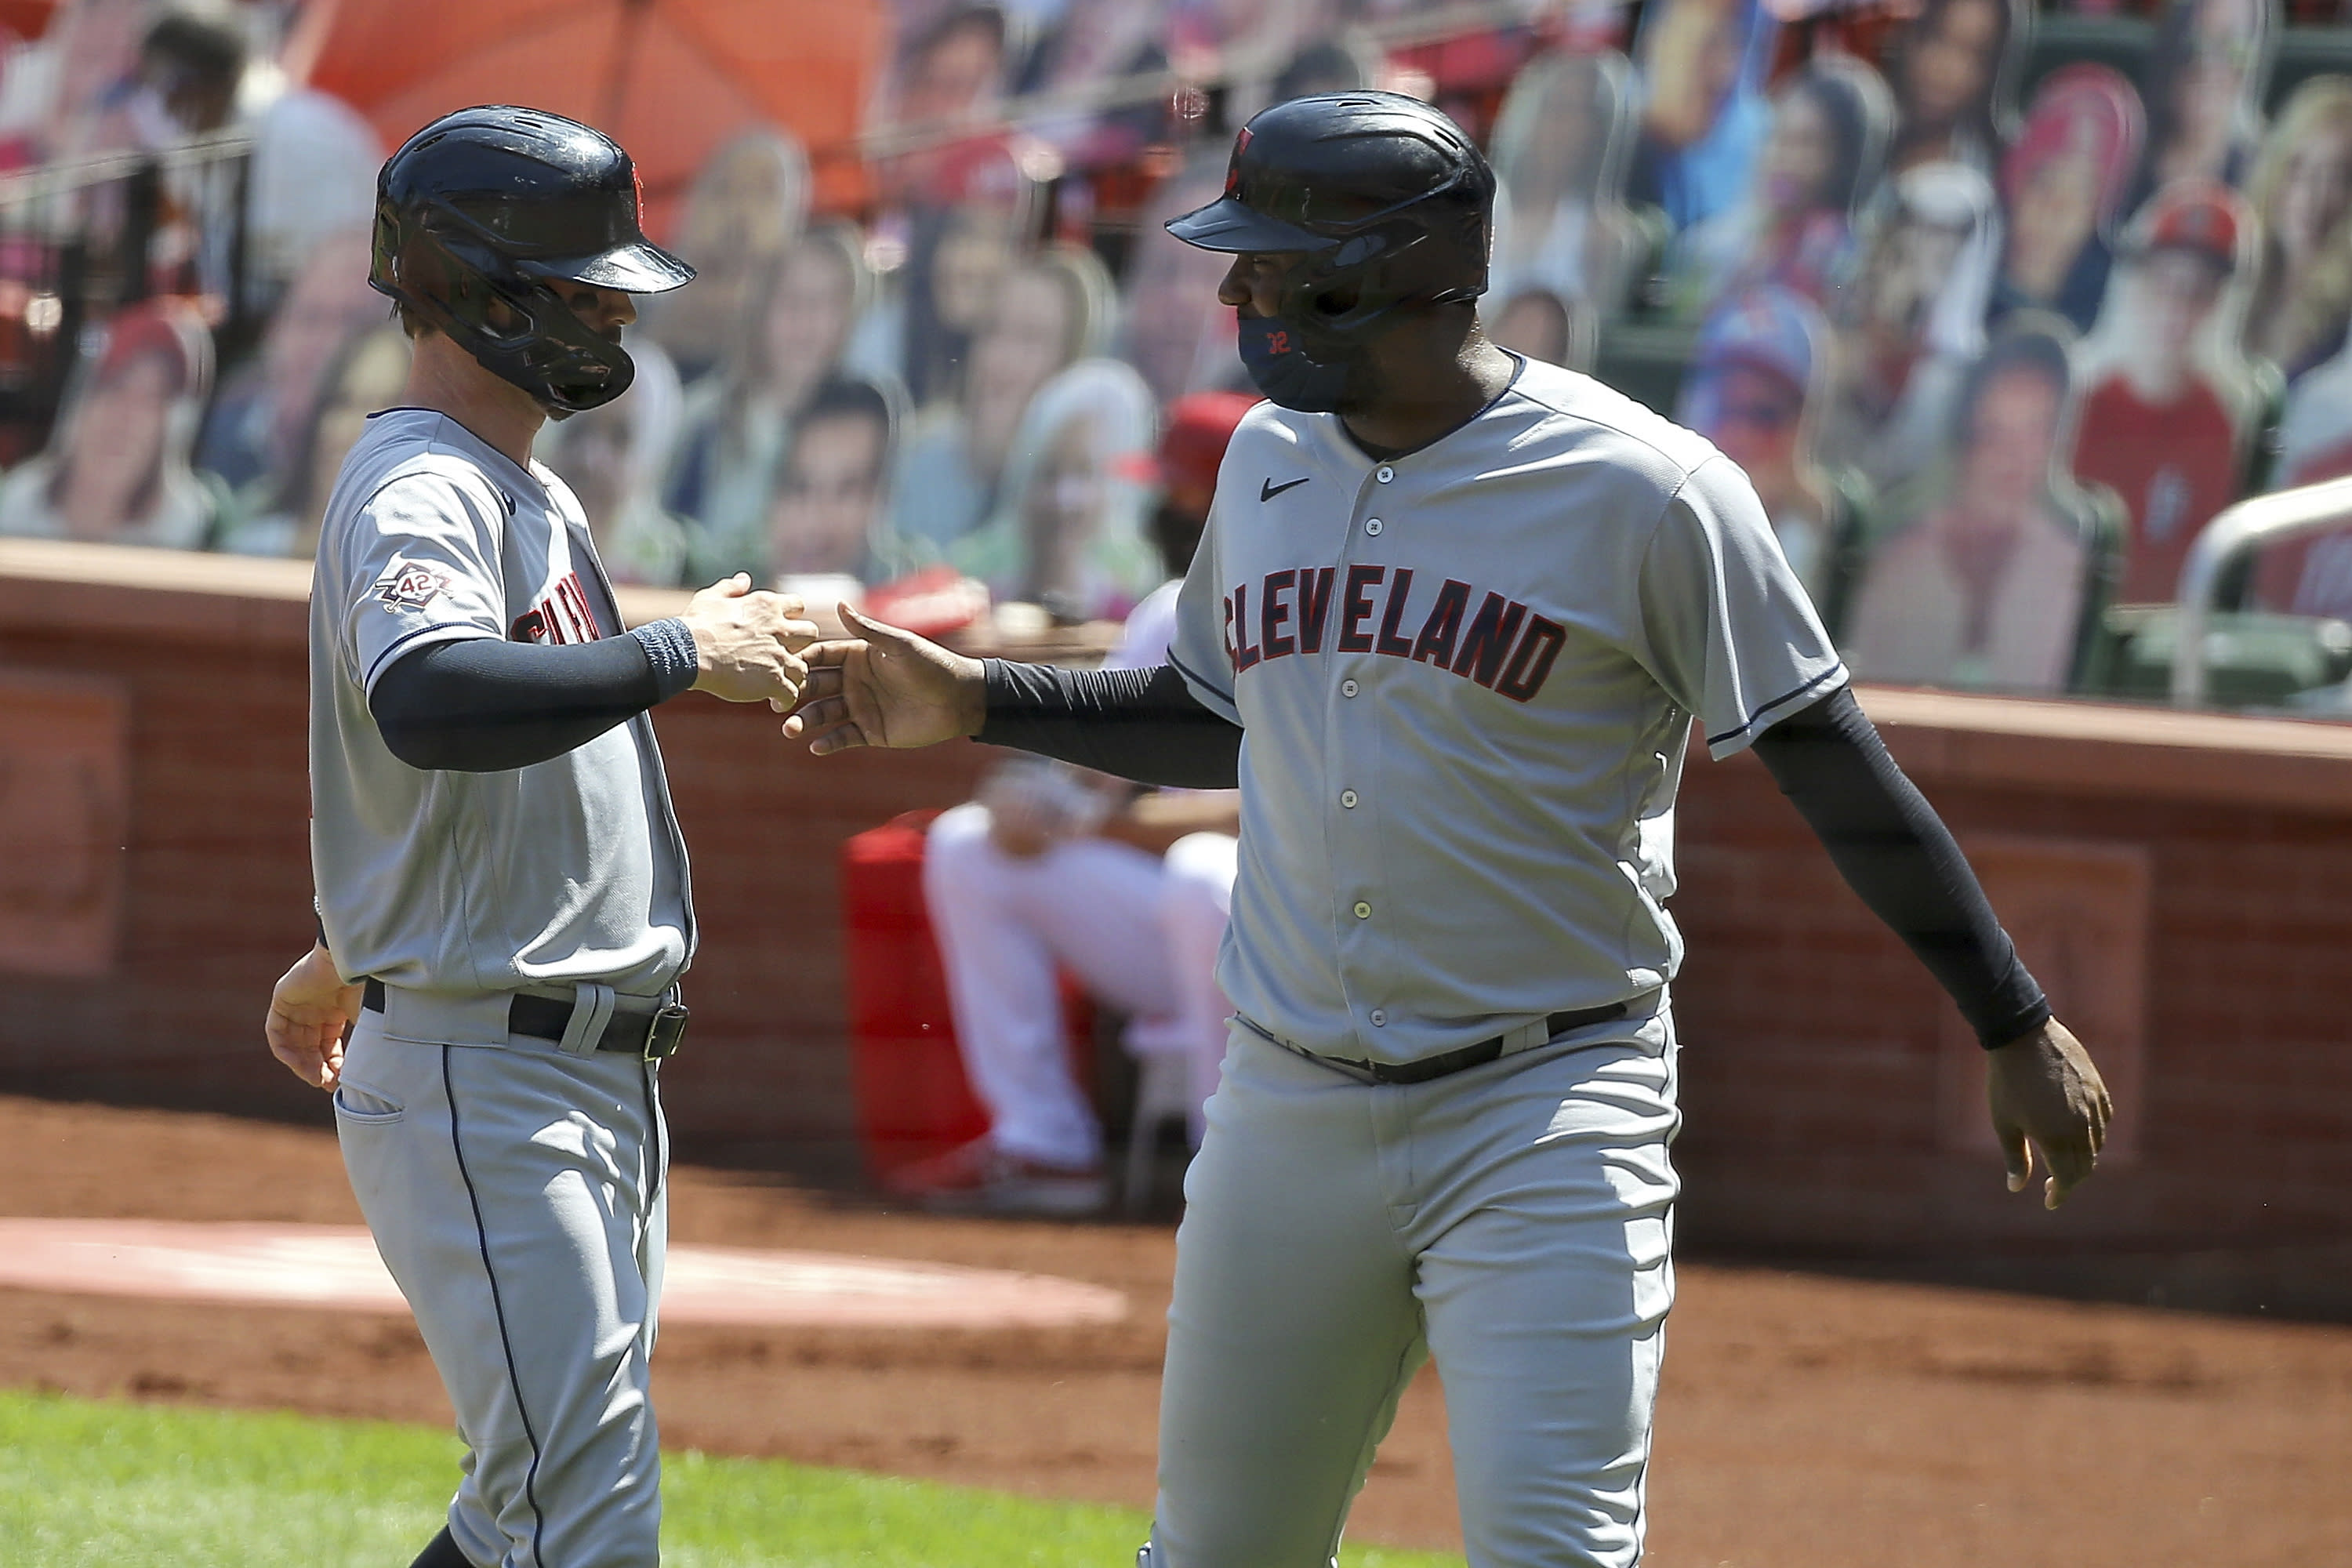 Cleveland Indians' Tyler Naquin, left, is congratulated by teammate Franmil Reyes after hitting a two-run home run during the second inning of a baseball game against the St. Louis Cardinals, Sunday, Aug. 30, 2020, in St. Louis. (AP Photo/Scott Kane)